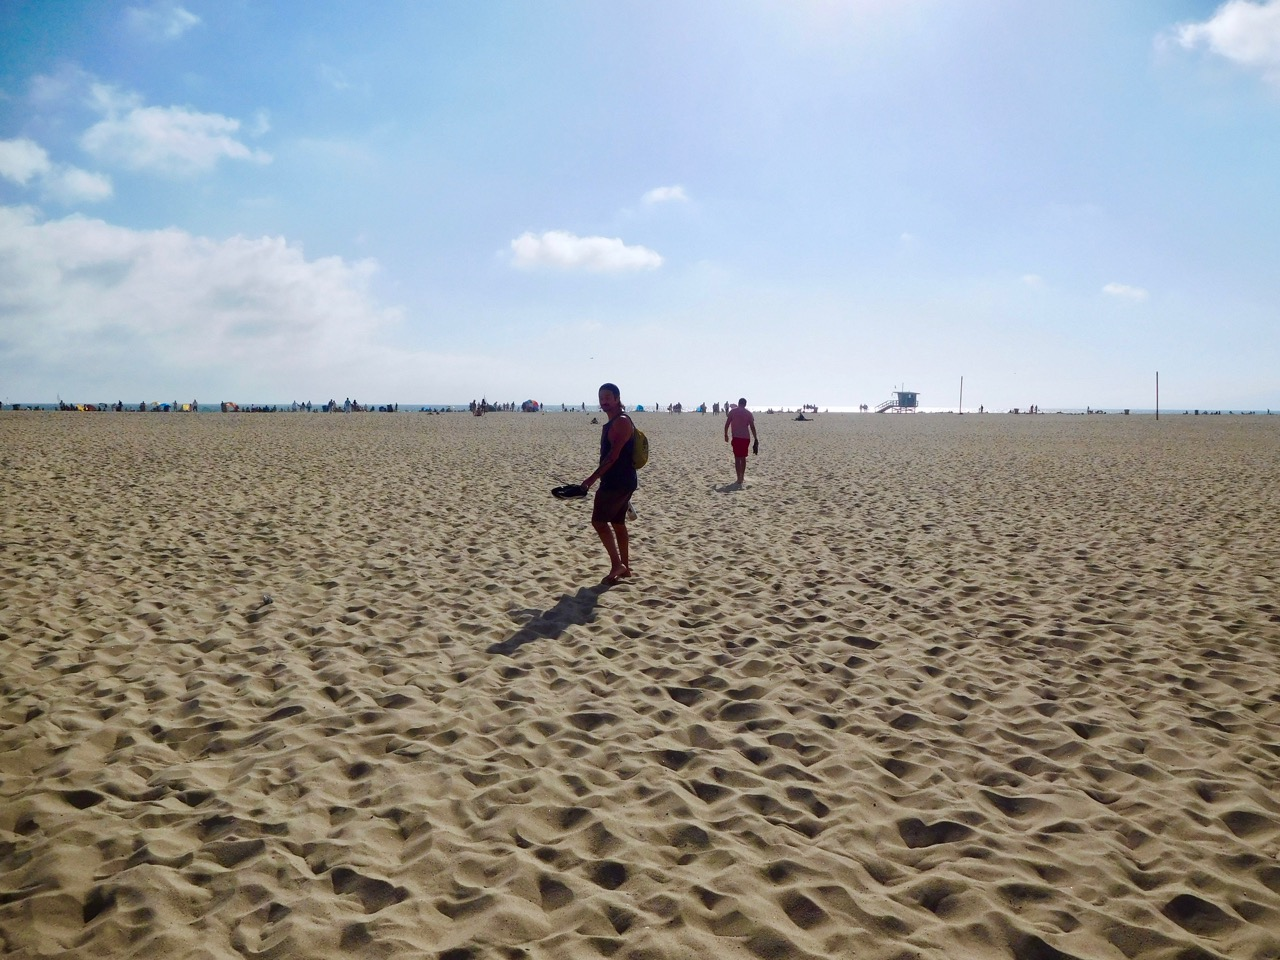 3 Days in L.A. - Santa Monica Beach (3)